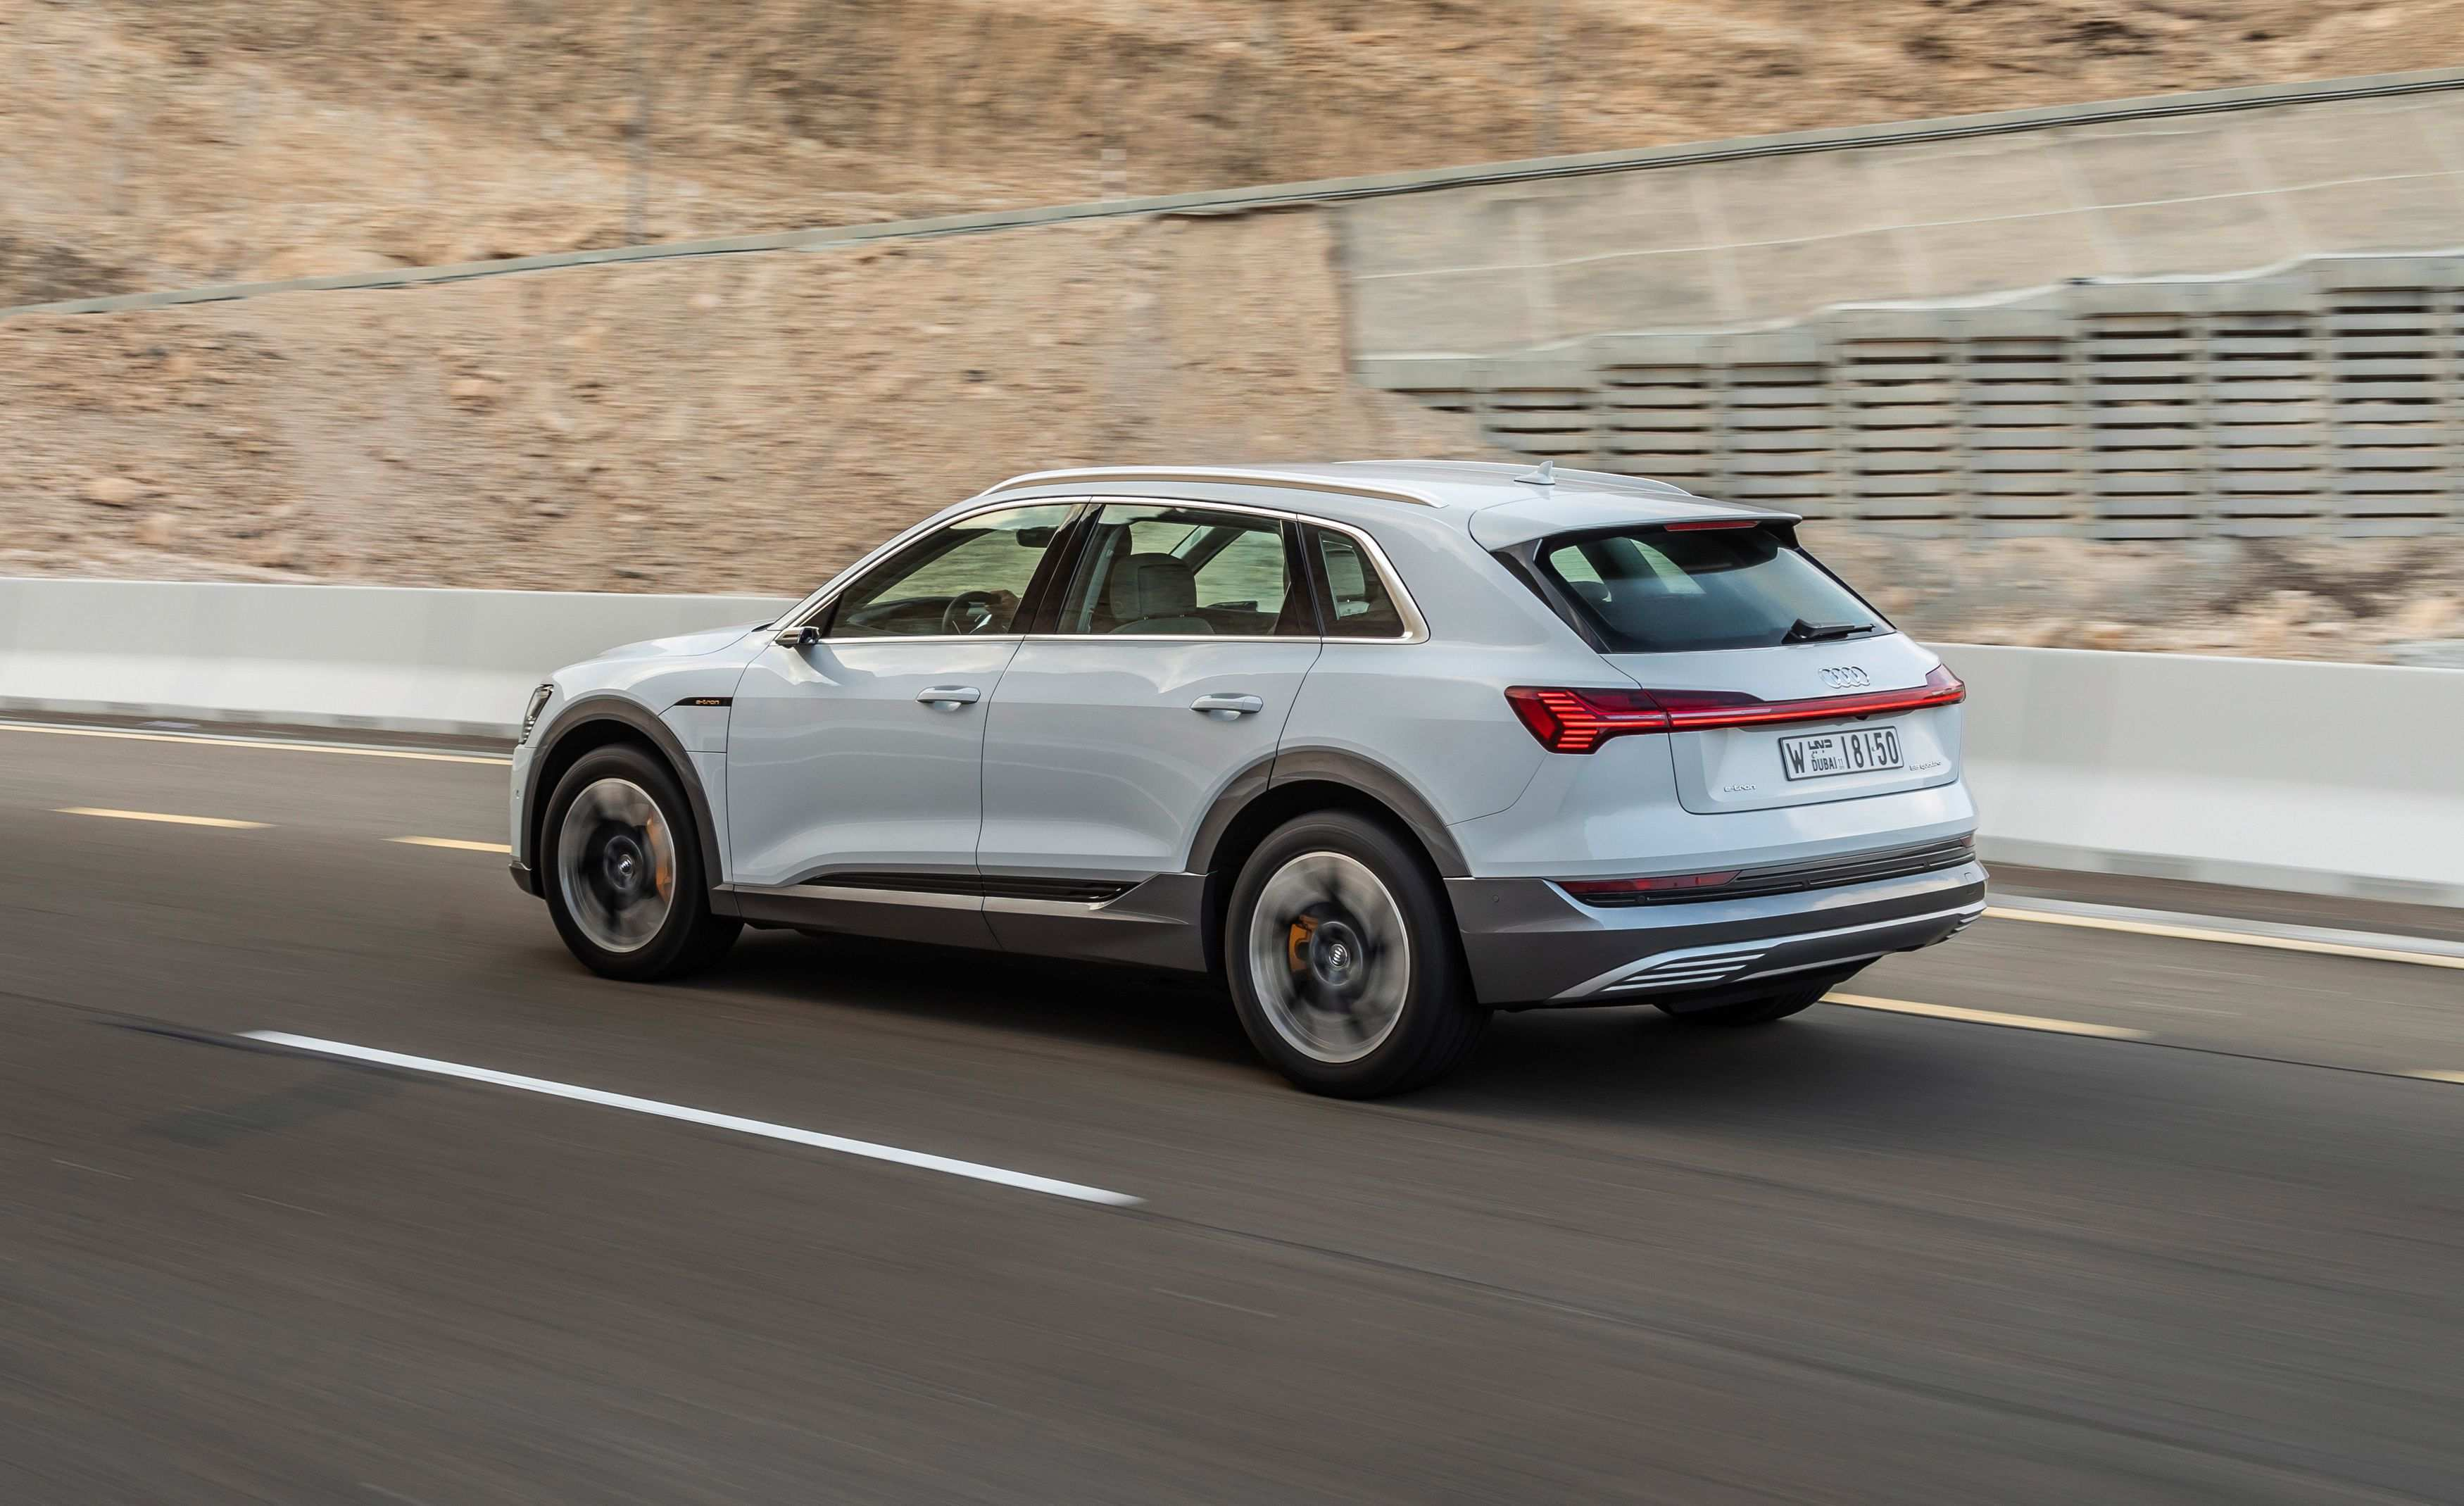 47 Great 2019 Audi Electric Car History for 2019 Audi Electric Car